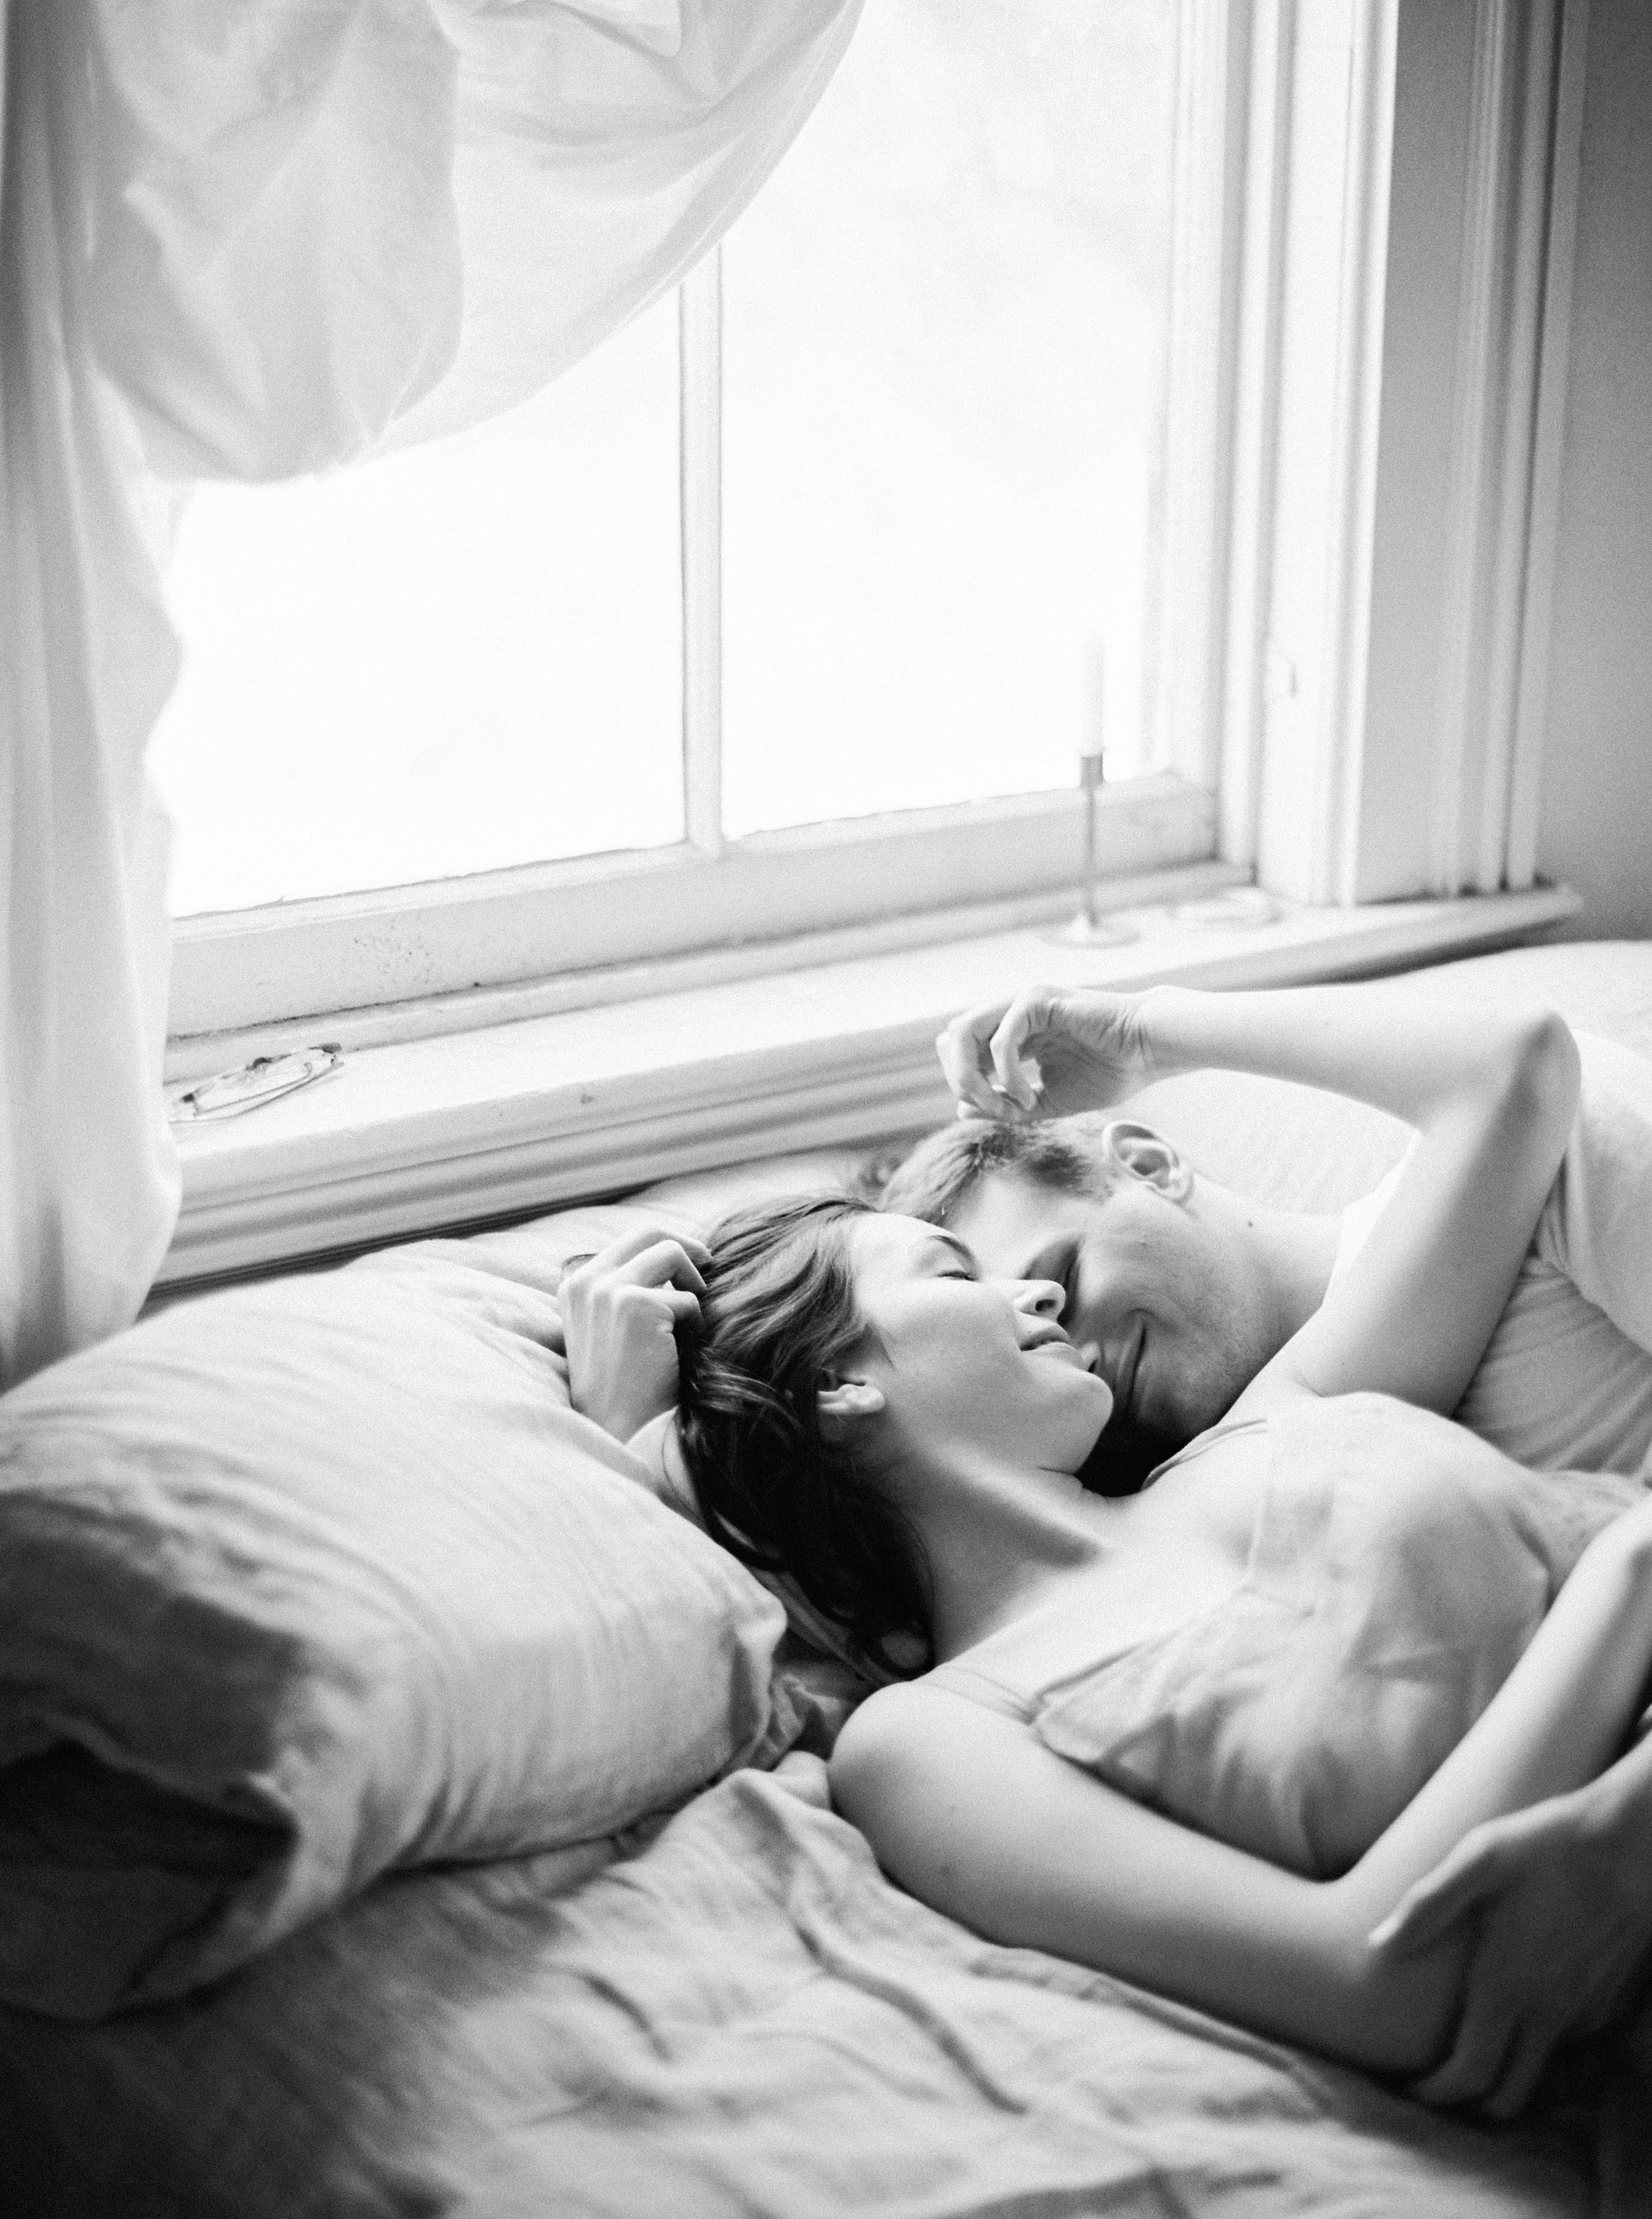 Meghan Mehan Photography - Fine Art Film Photography - San Francisco | Napa | Sonoma | Santa Barbara - Boudoir - 013.jpg